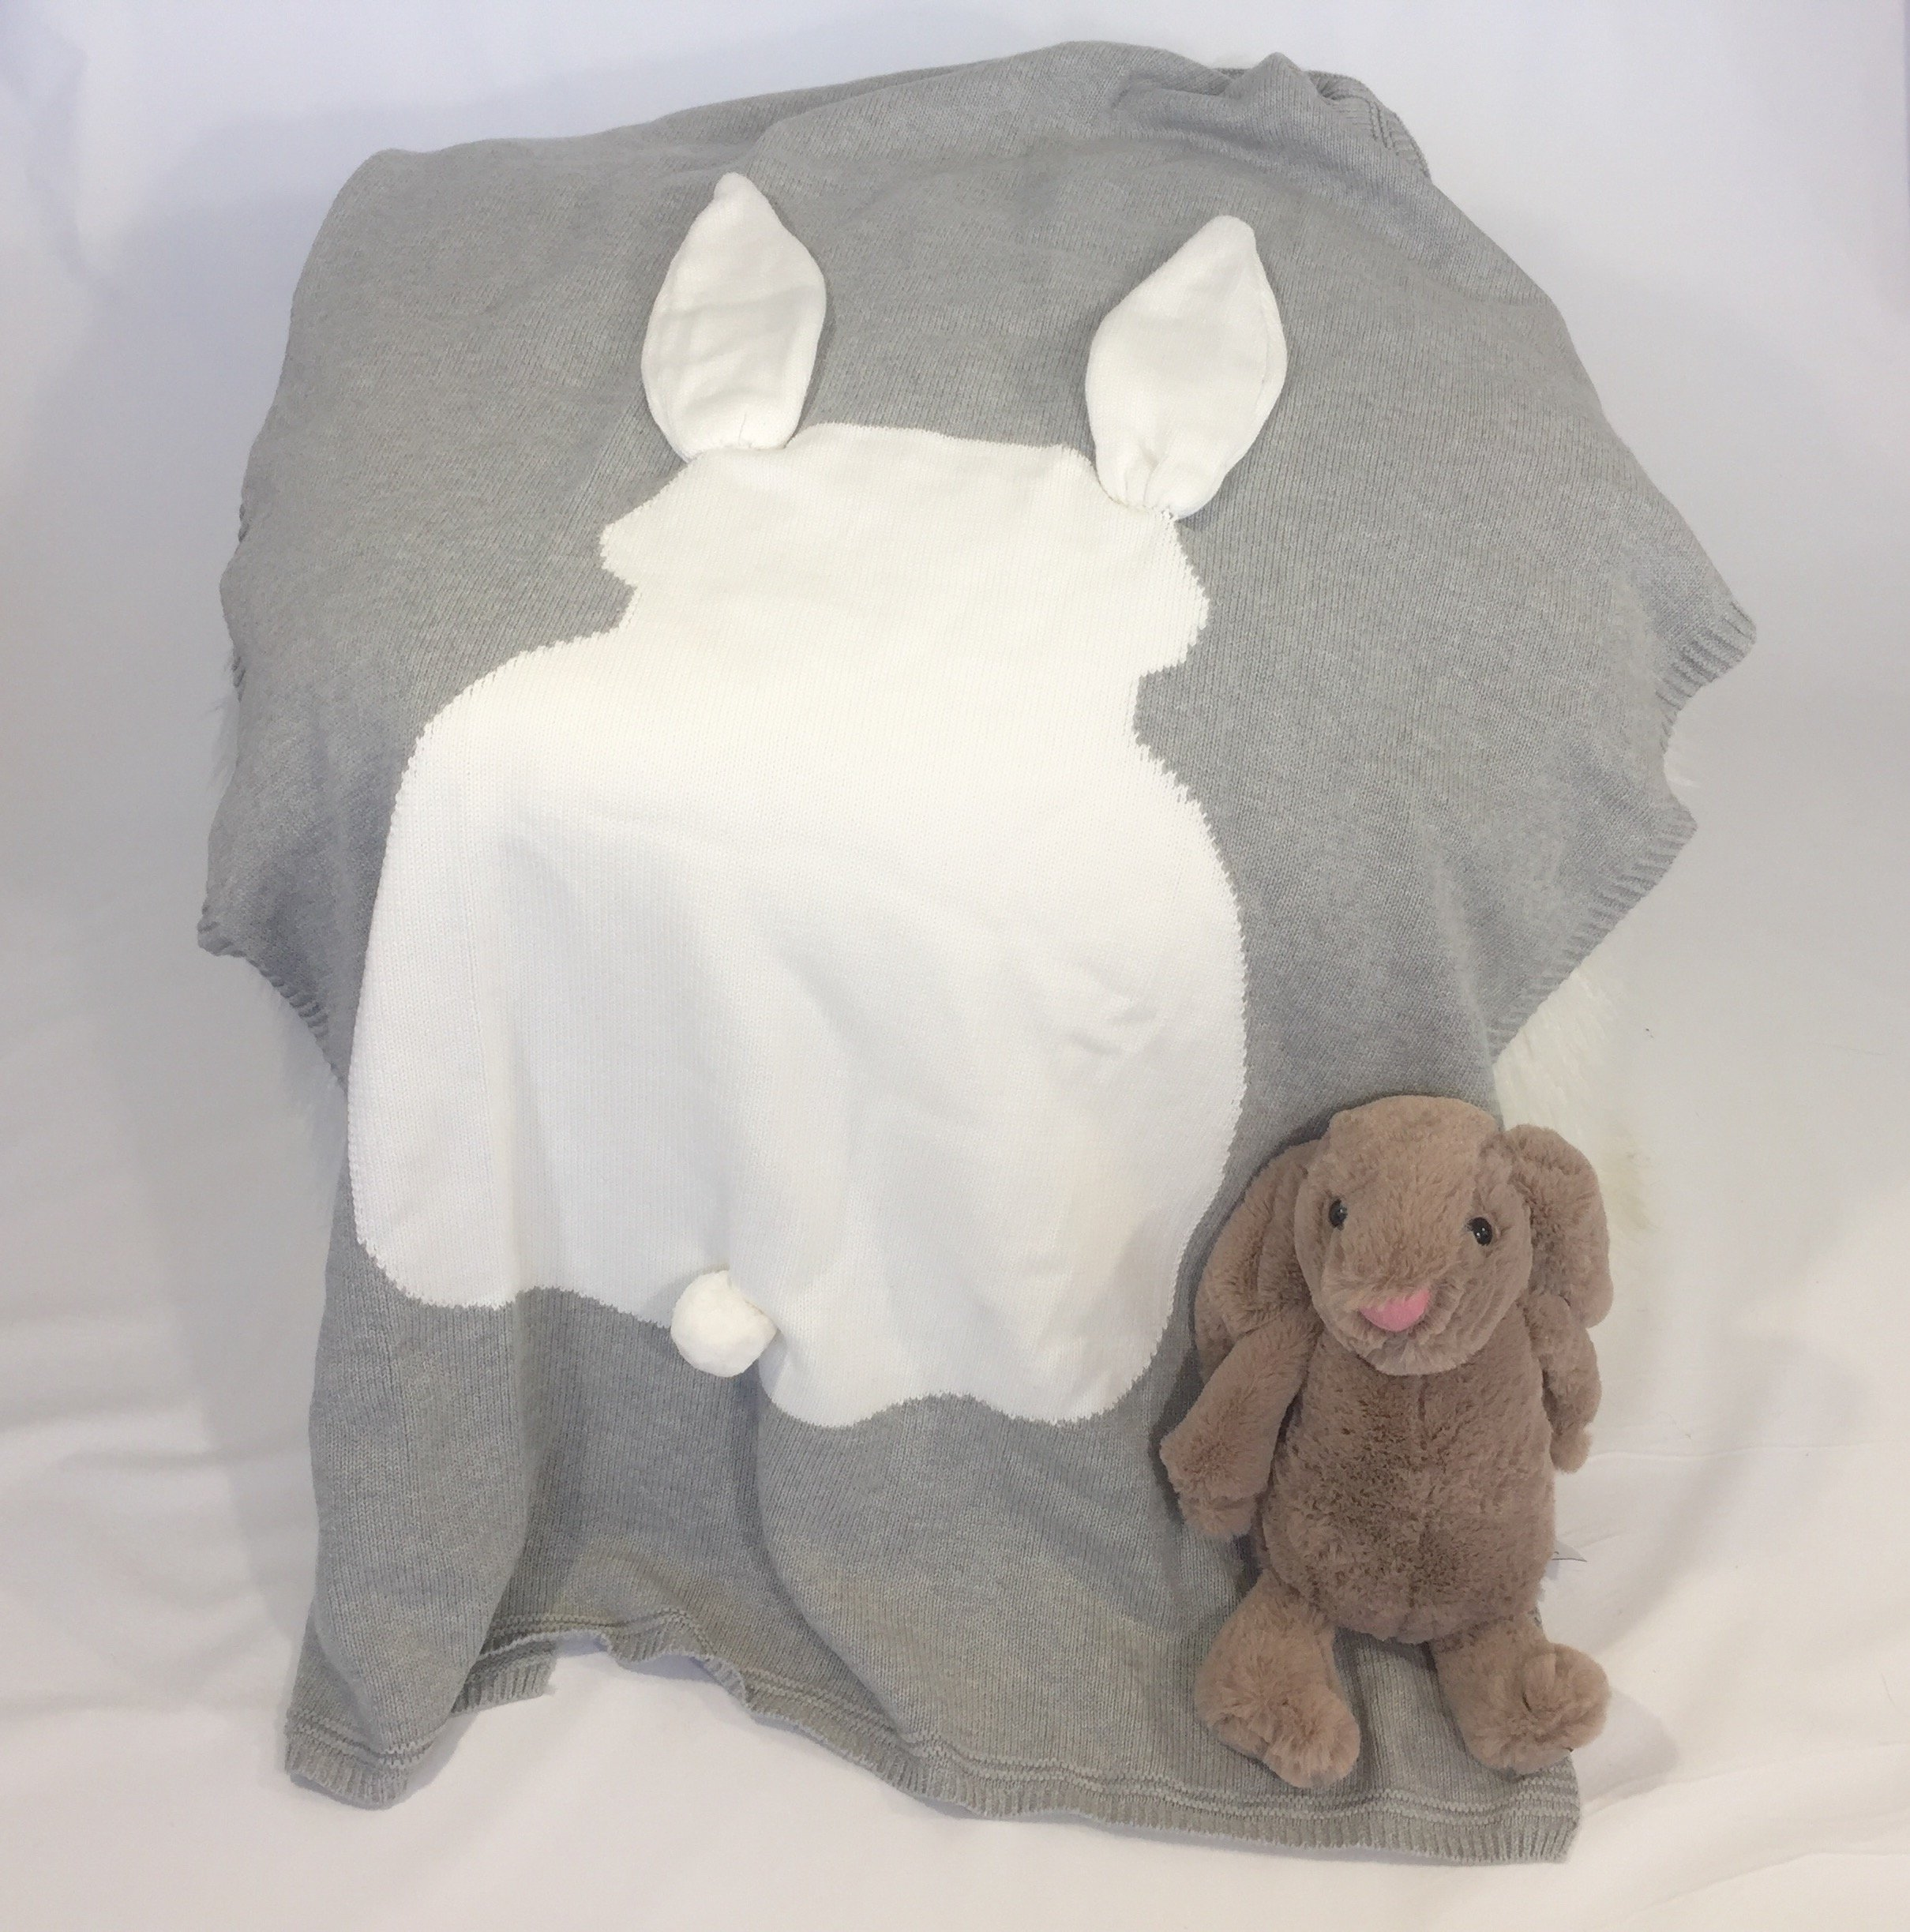 MOM Will SAY,Wow! Bundle of Joy Baby Gift Basket/Large Bag, Soft Washcloths, Bunny Plush Toy, Bunny Slippers, Keepsake Bunny Blanket, Bunny Hat, Handmade Tooth Fairy kit, and More!